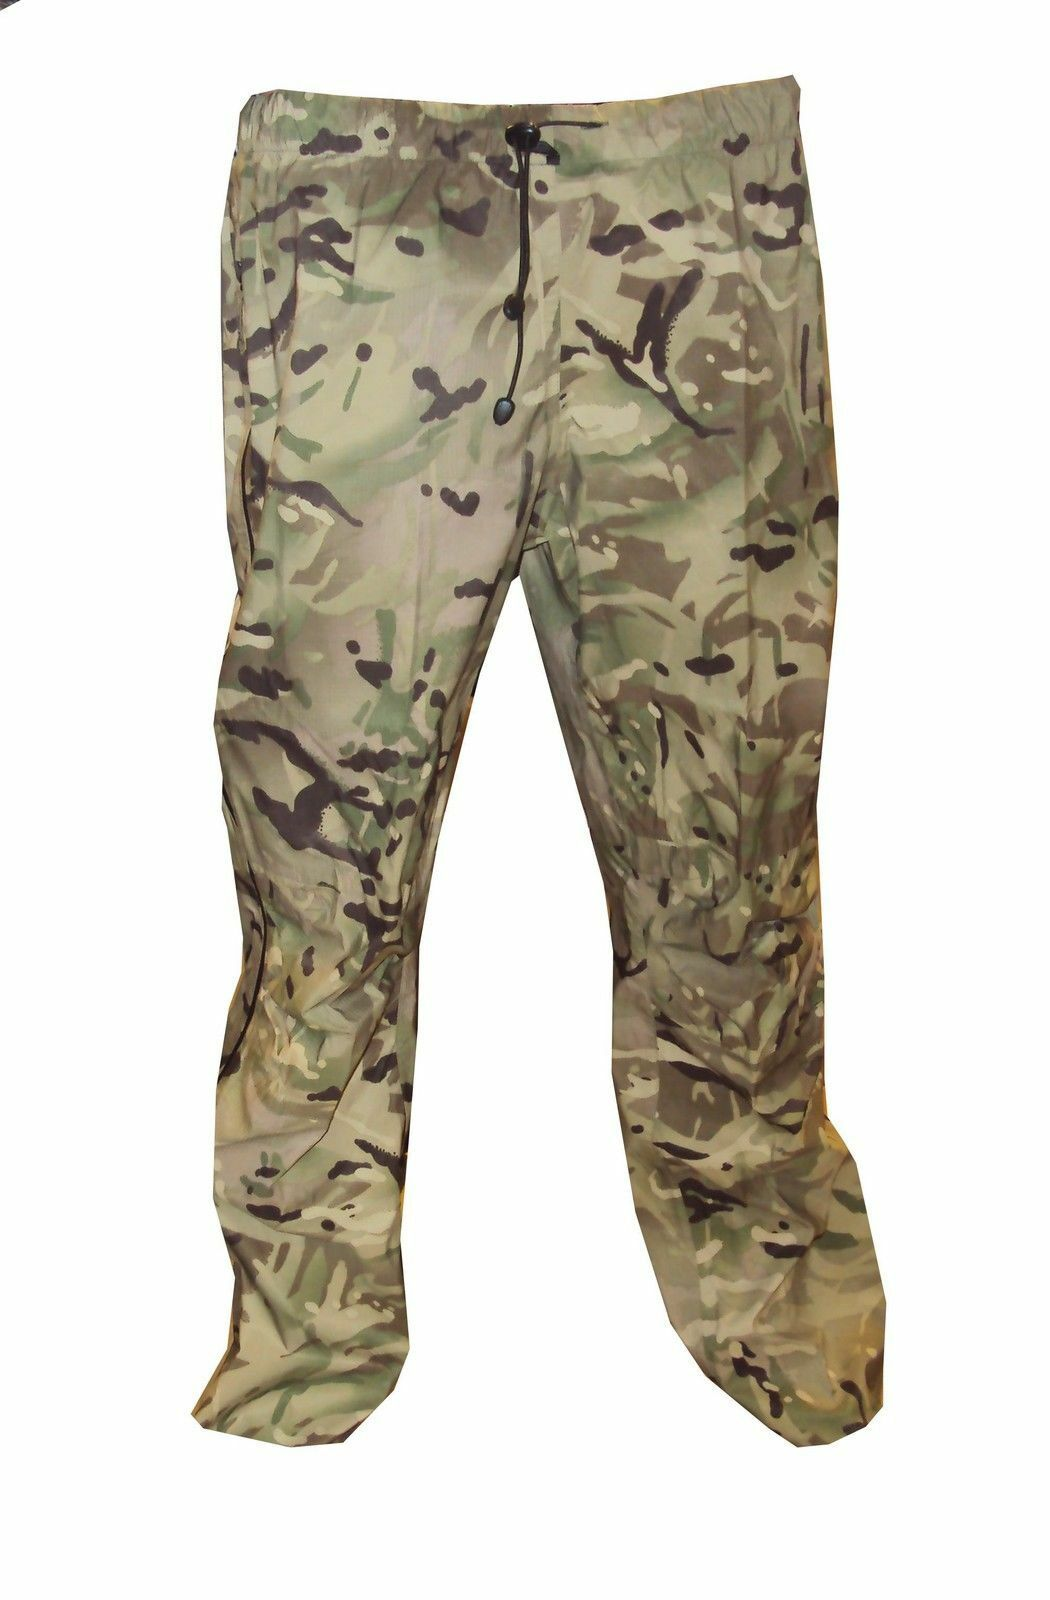 BRITISH ARMY - MTP LIGHTWEIGHT GORETEX TROUSERS - MEDIUM - GRADE 1